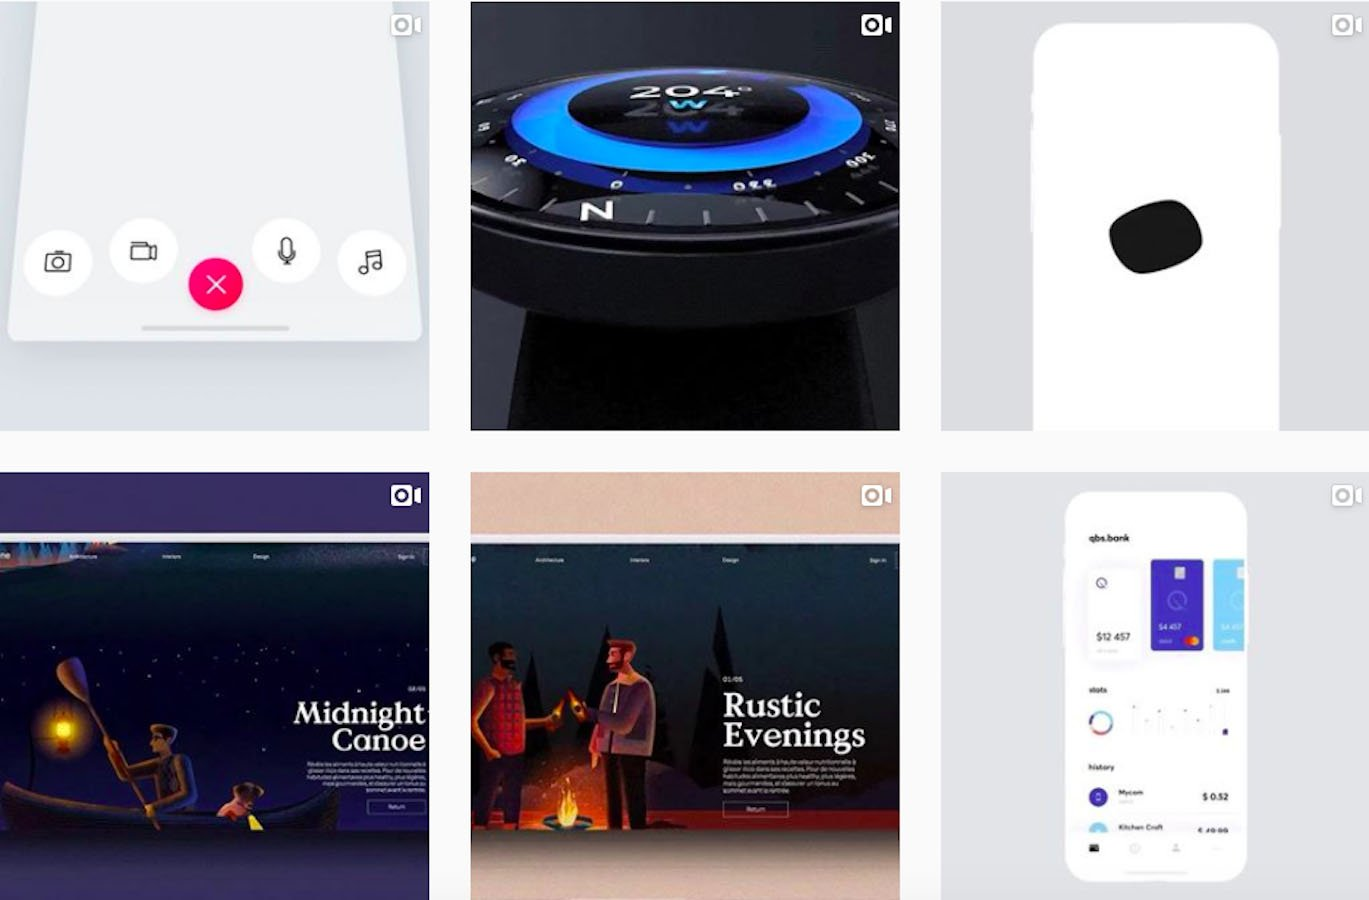 Web Design Inspiration: 110+ Accounts On Instagram and 10+ Best UX & Web Design Books in 2020 - ui.designs